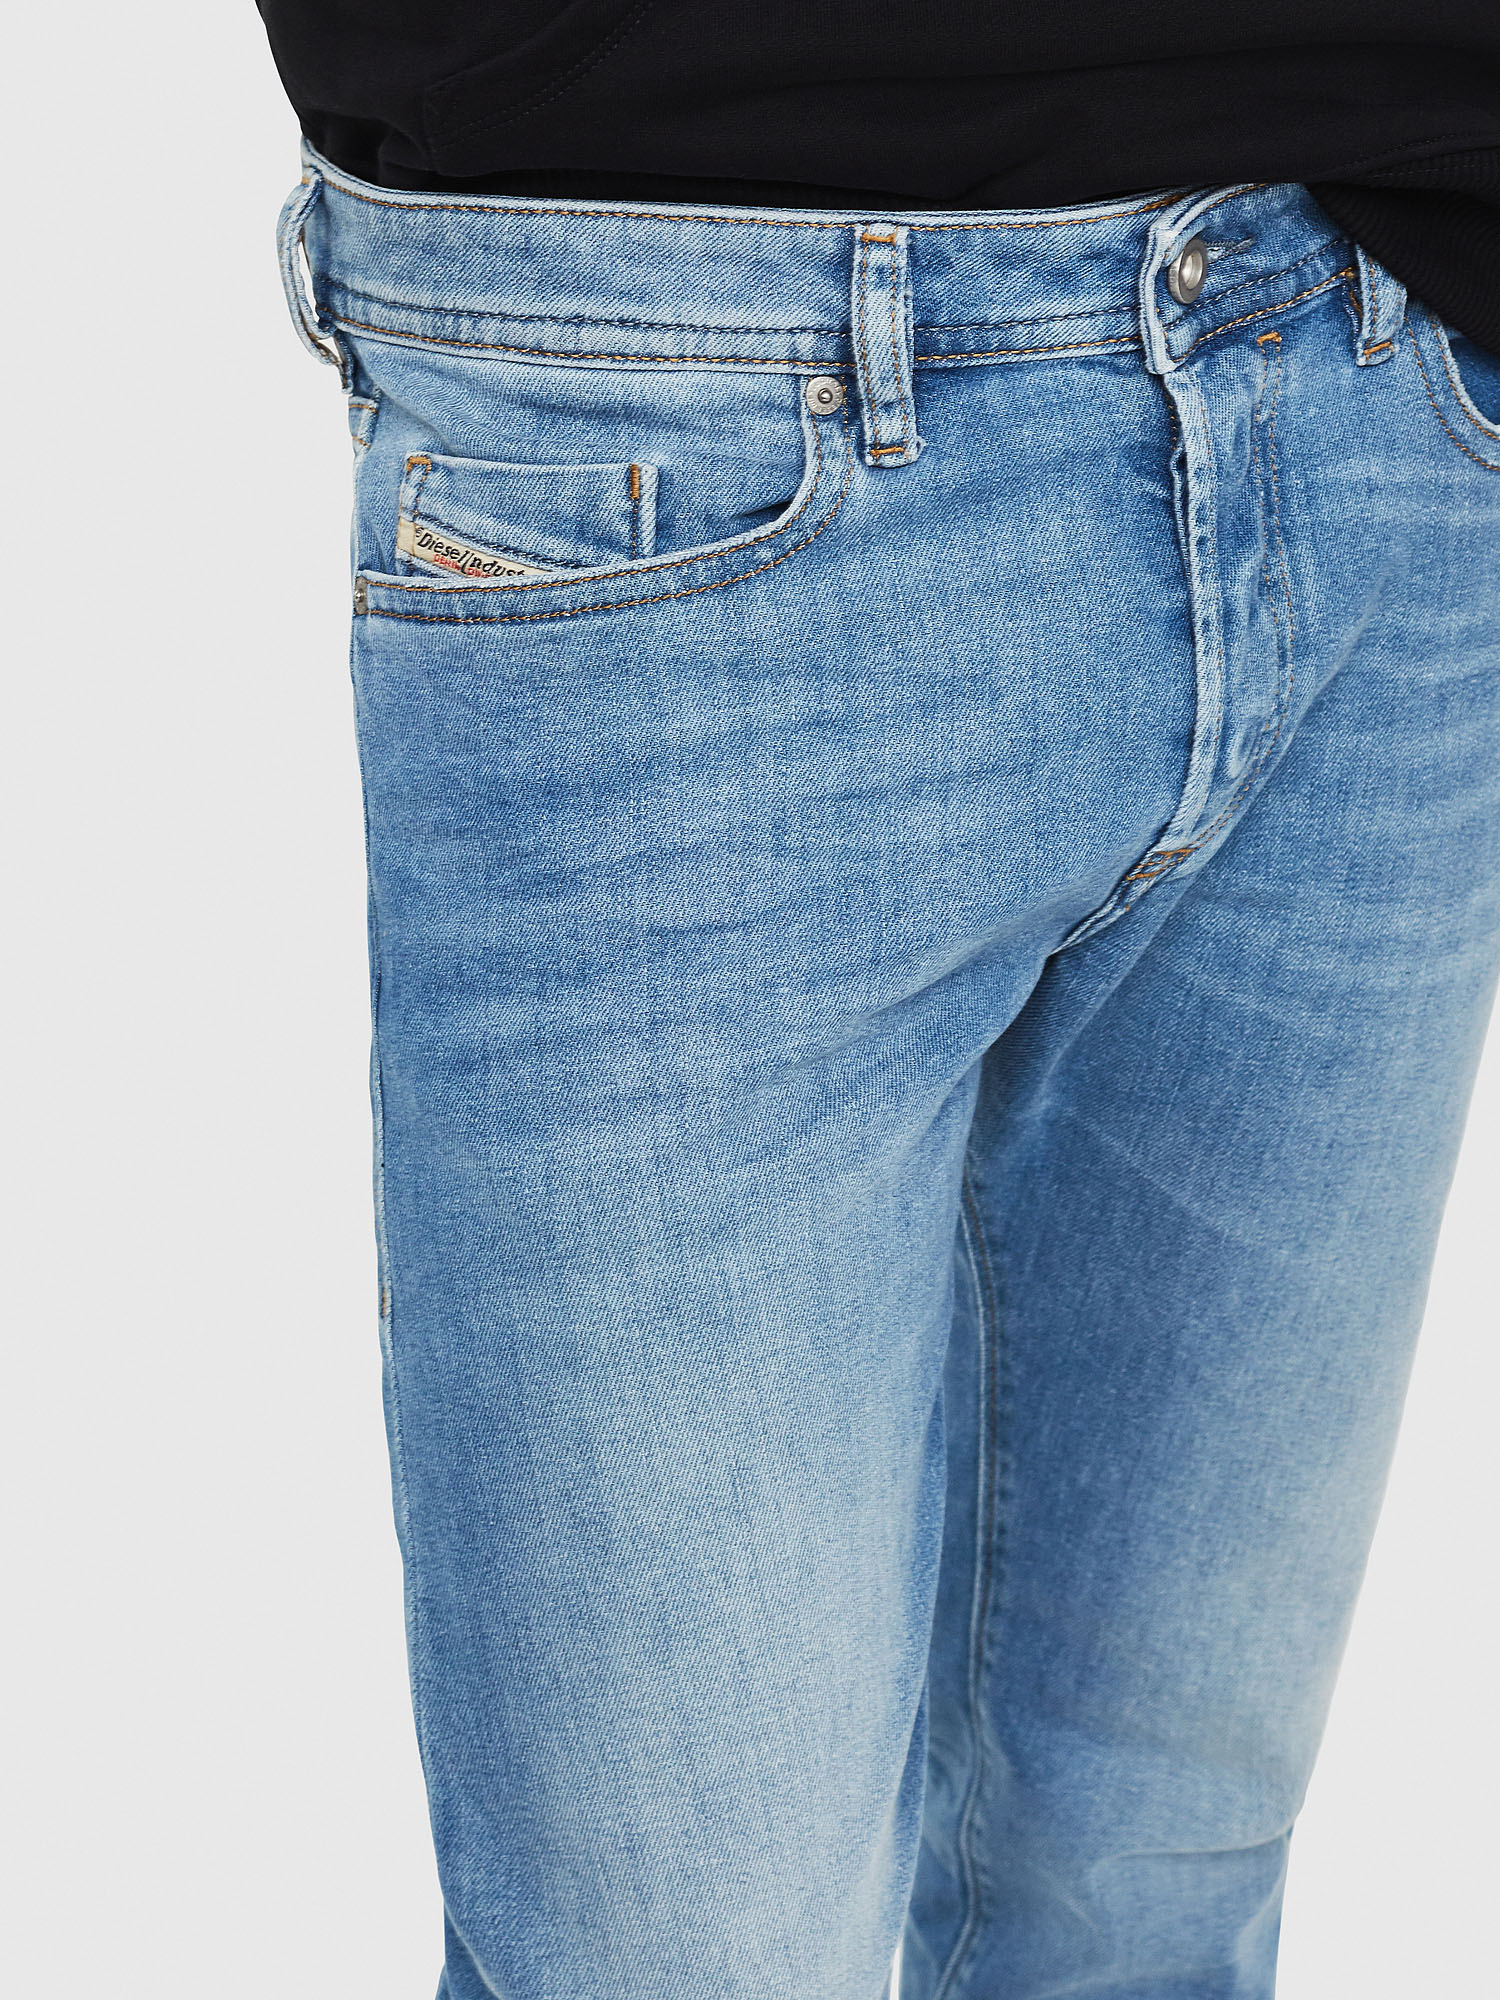 Diesel - Buster 087AQ,  - Jeans - Image 3